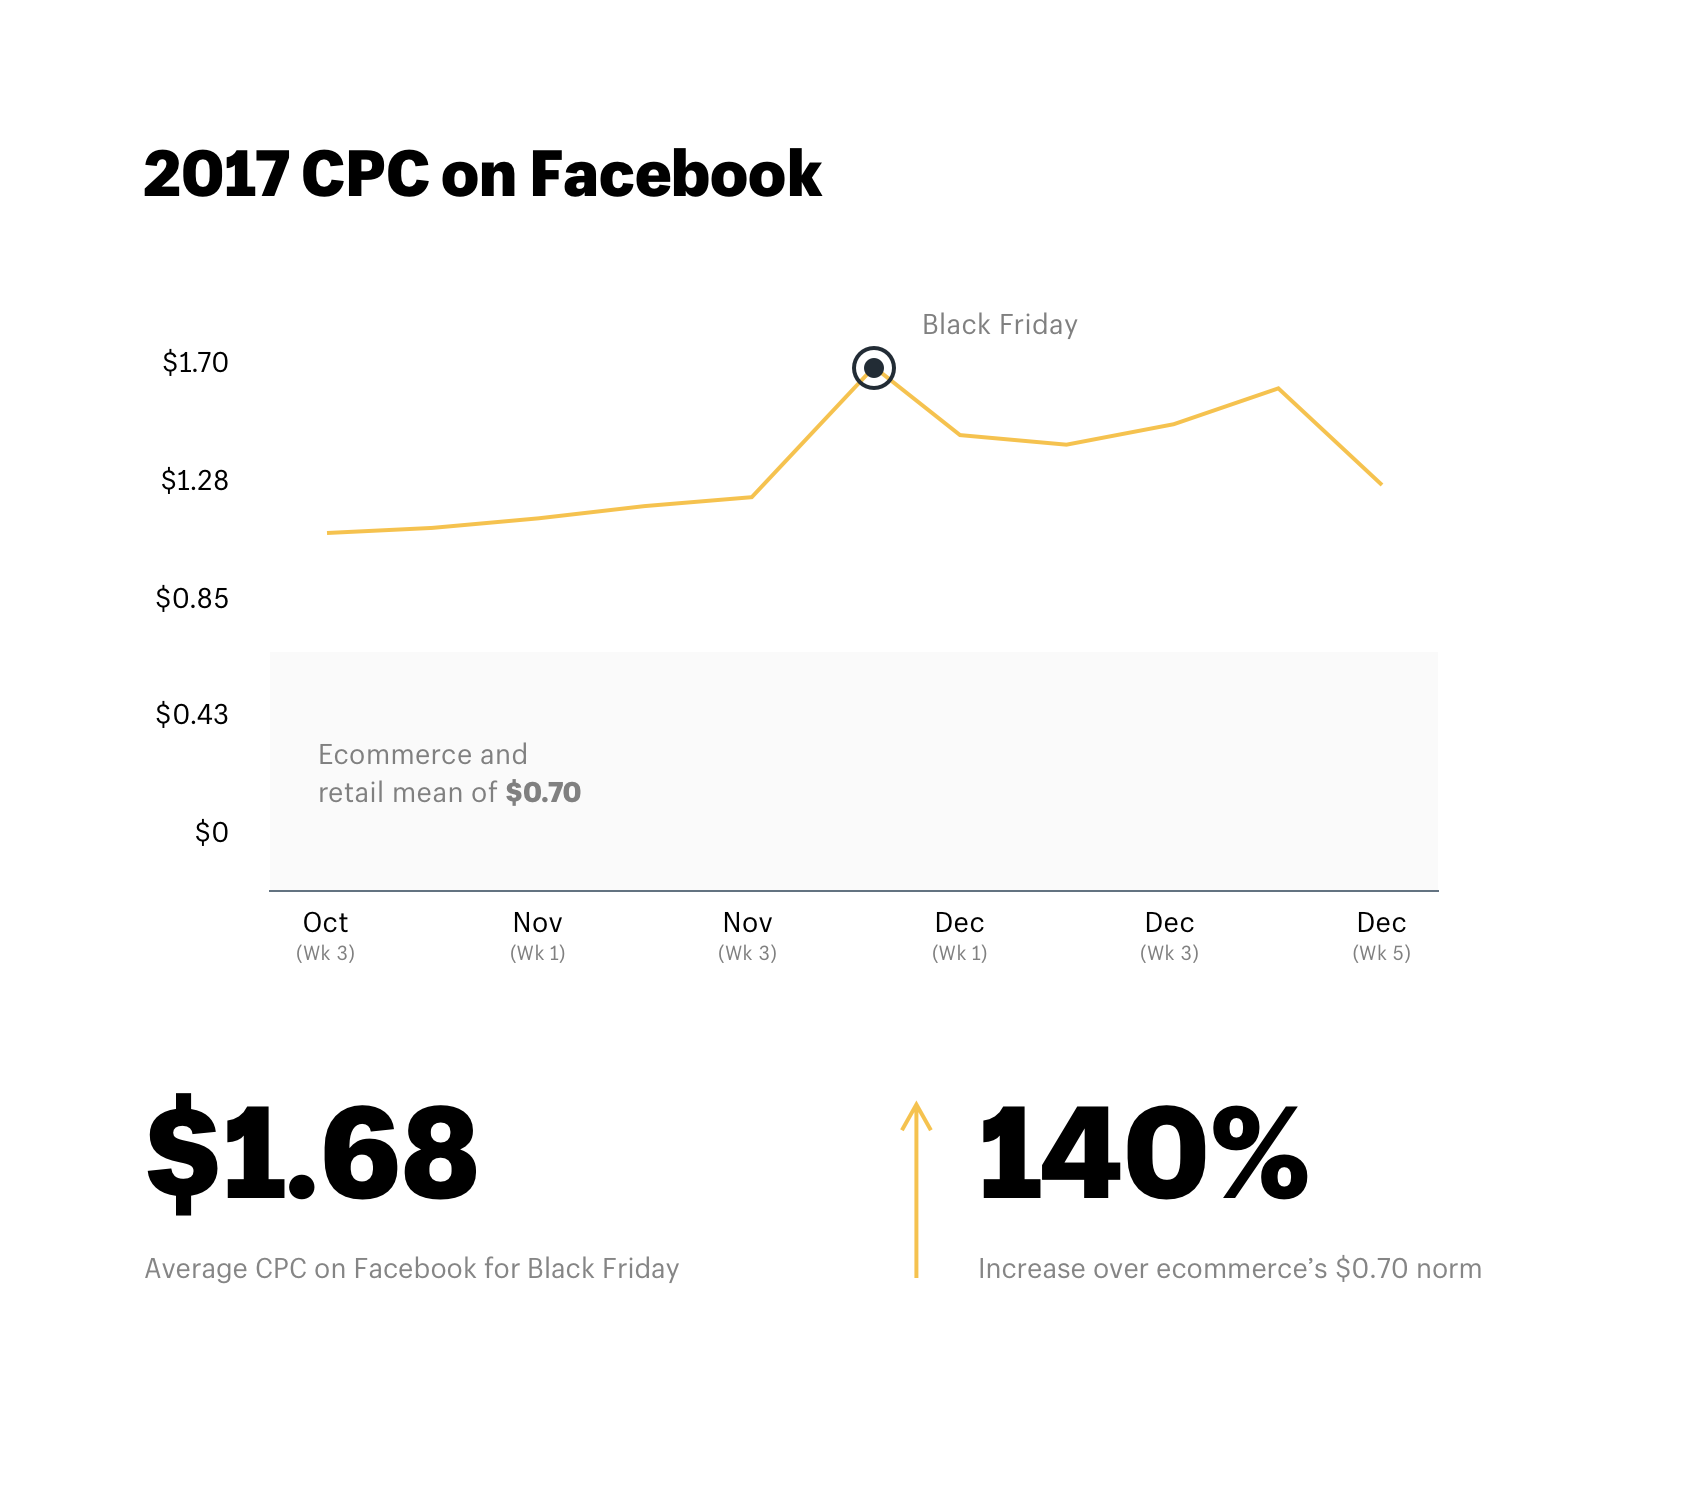 2017 CPC on Facebook during Black Friday and Q4